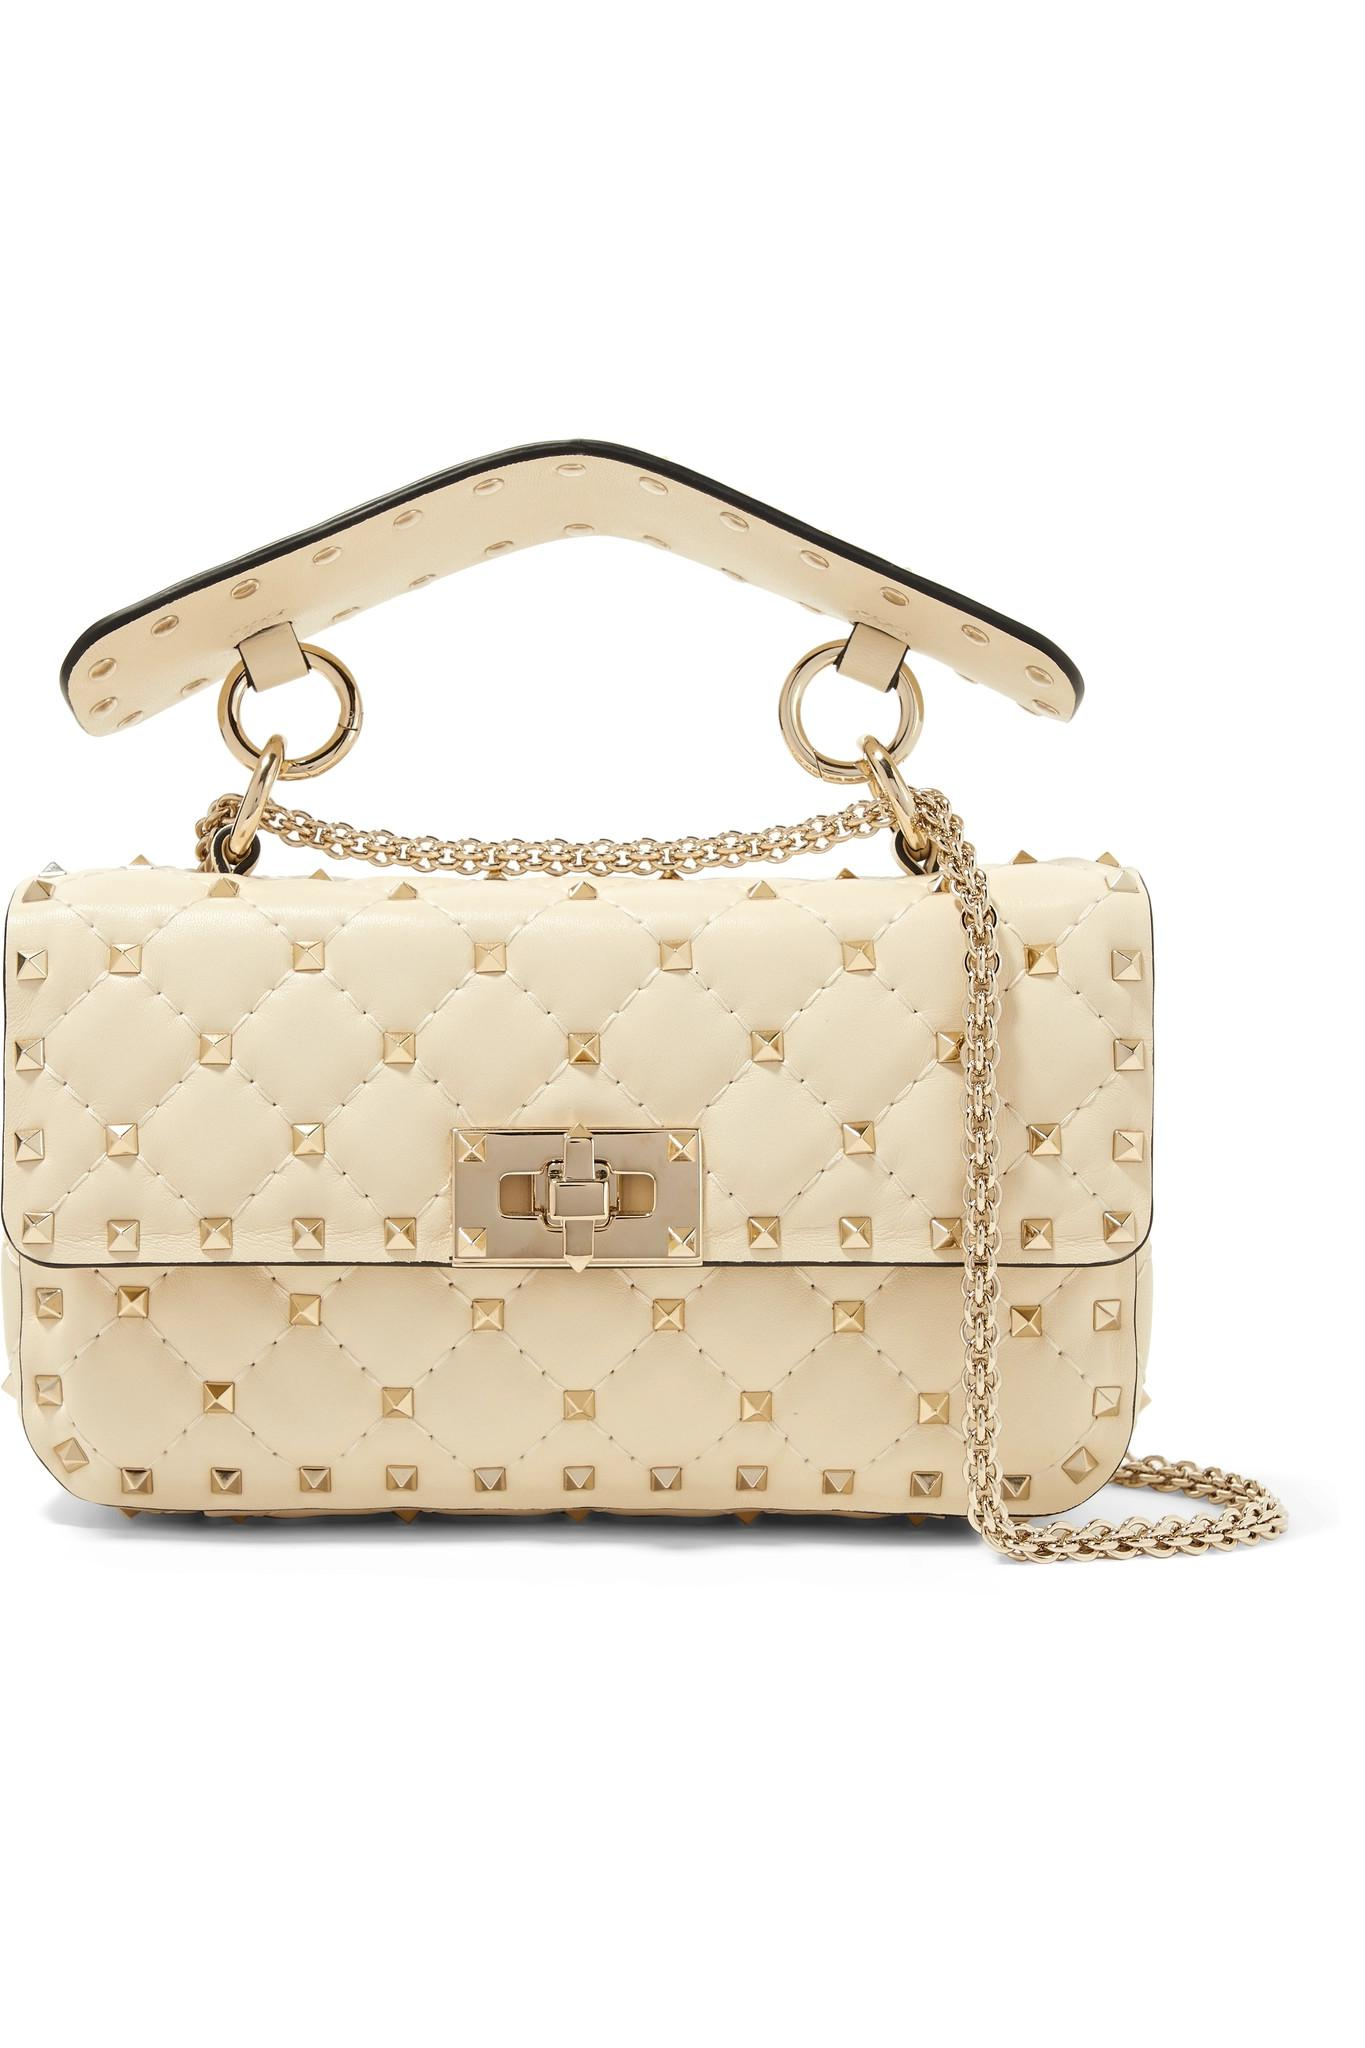 Lyst - Valentino Rockstud Spike Quilted Leather Shoulder Bag in White b98611611d